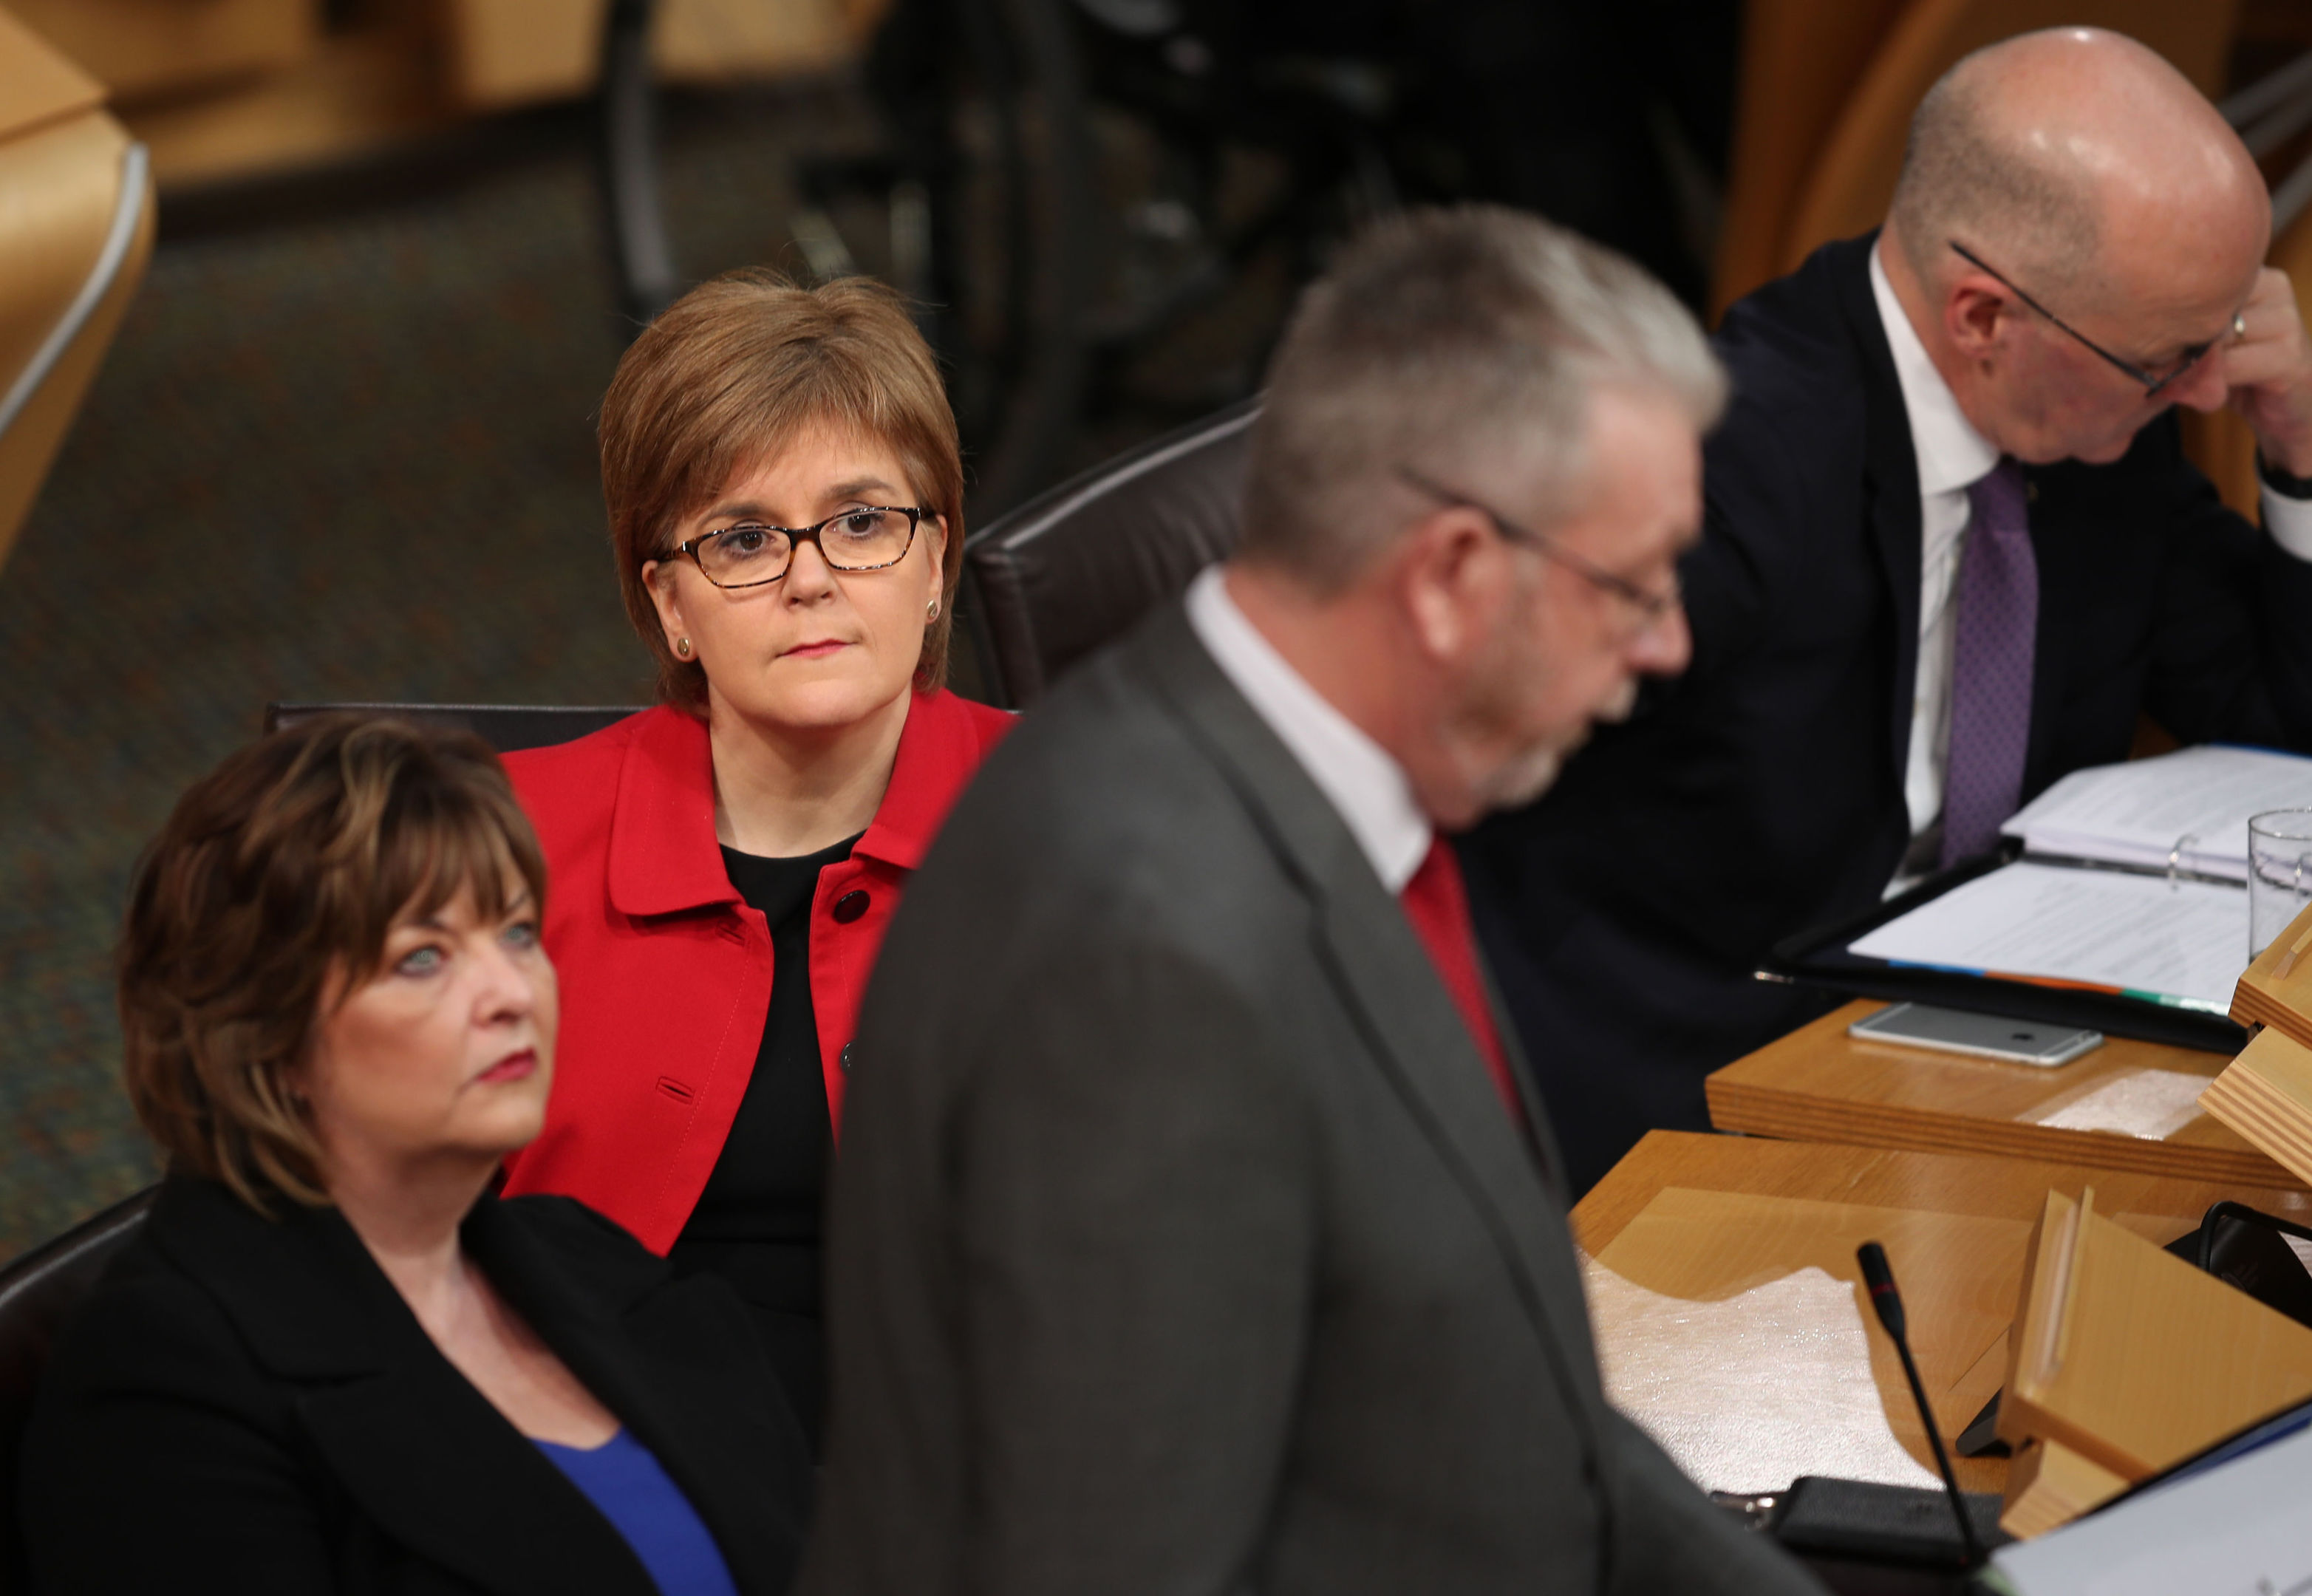 First Minister Nicola Sturgeon listens as the Minister for UK Negotiations on Scotland's Place in Europe Mike Russell speaks during the Scottish Parliament debate on the triggering of Article 50 in the main chamber of the Scottish Parliament. (Jane Barlow/PA Wire)